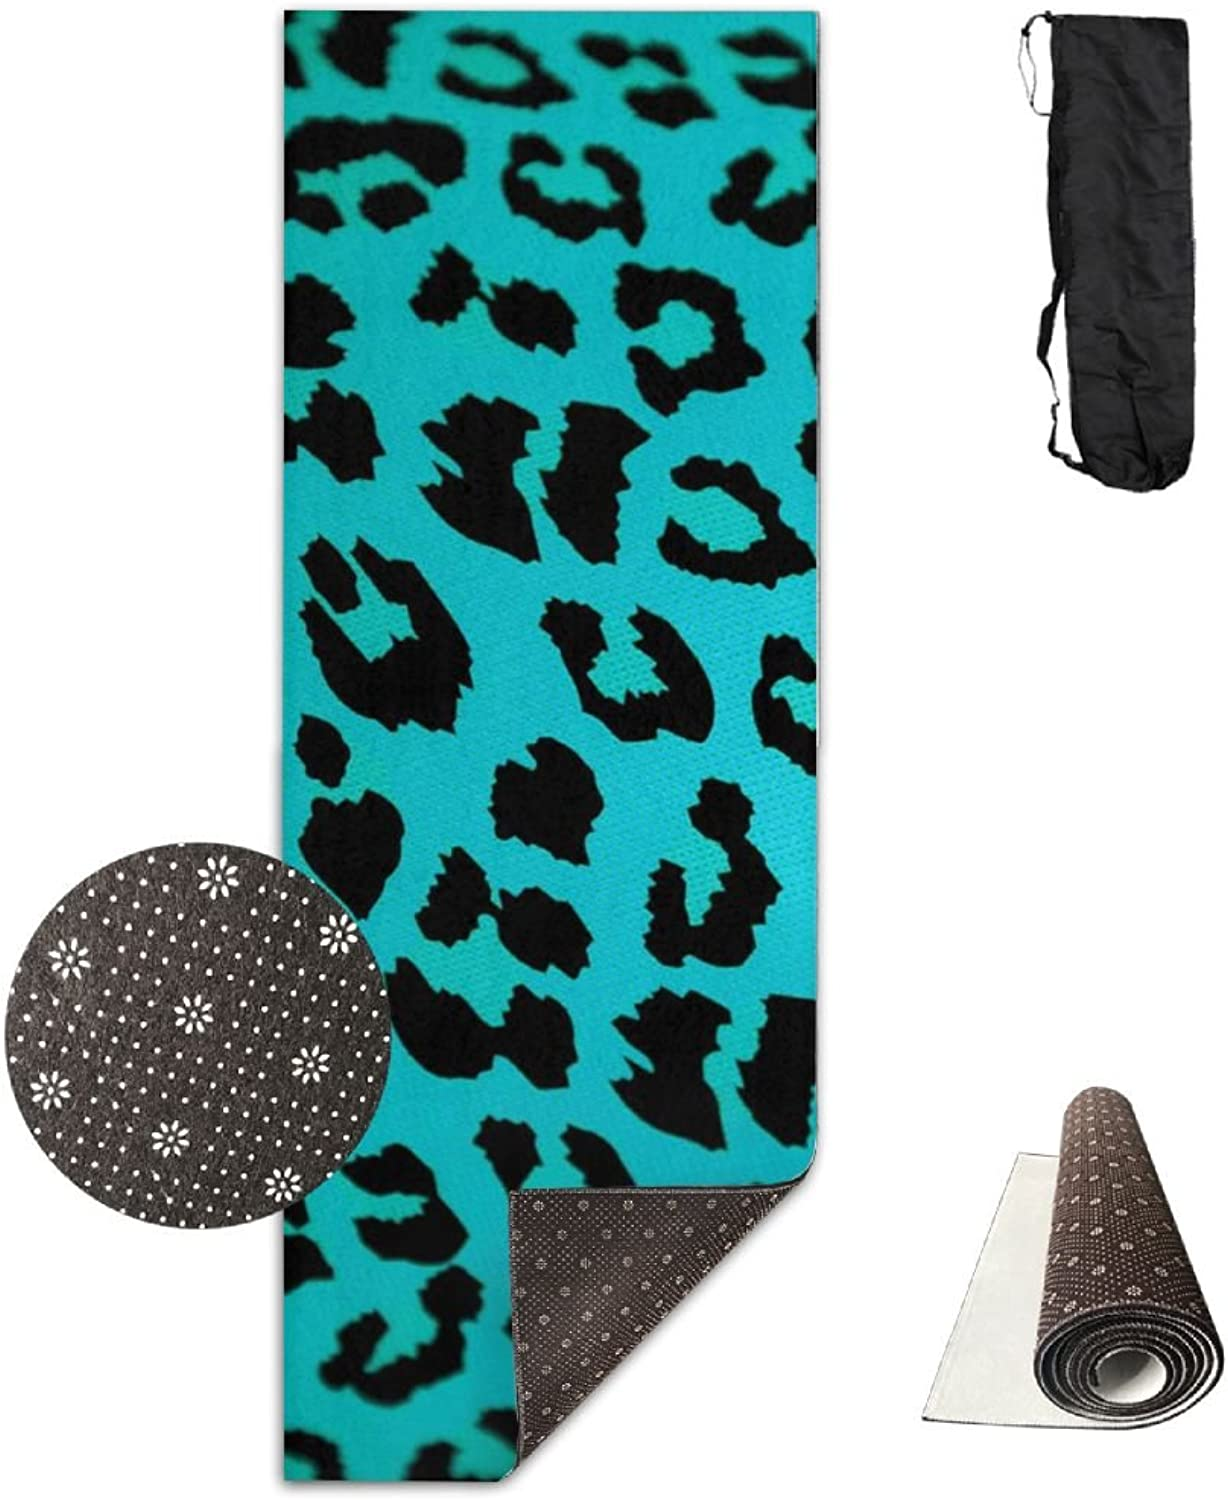 BINGZHAO Green Leopard Print Animal Exercise Yoga Mat for Pilates,Gym,Fitness, Travel & Hiking